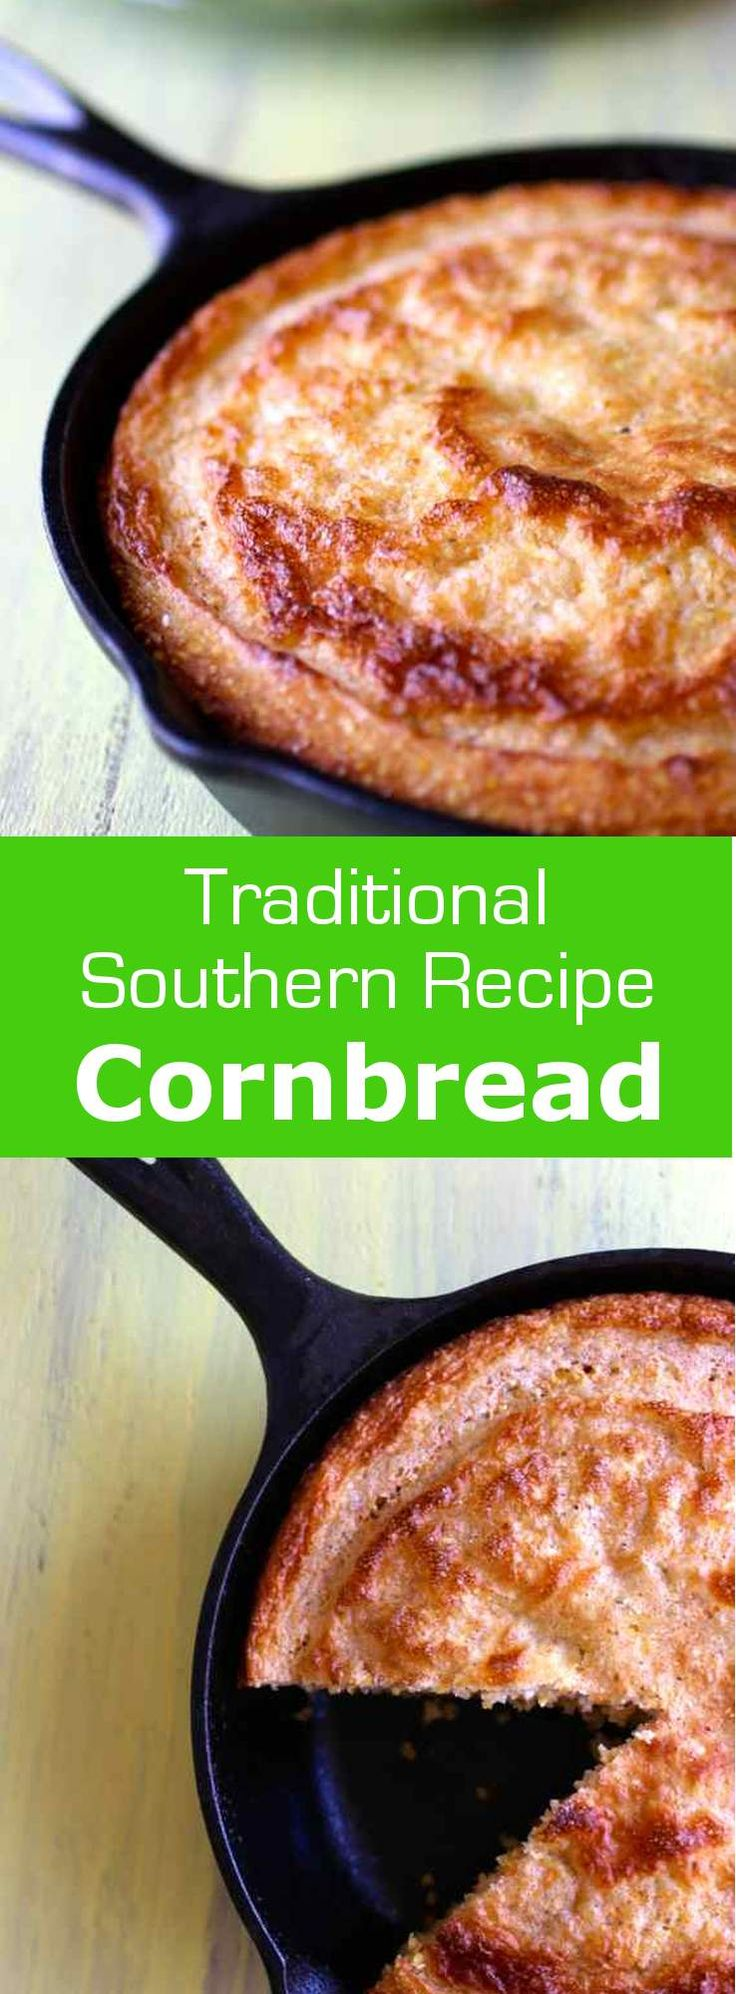 50 best 196 american classic recipes images on pinterest classic cornbread is the traditional cornmeal based bread that is typically associated with southern cuisine lots if good info here about corn bread and corn meal forumfinder Gallery